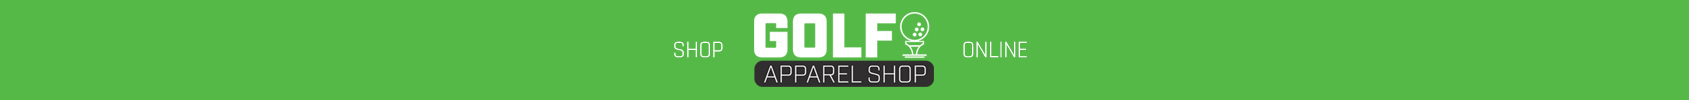 Golf Apparel Shop Logo